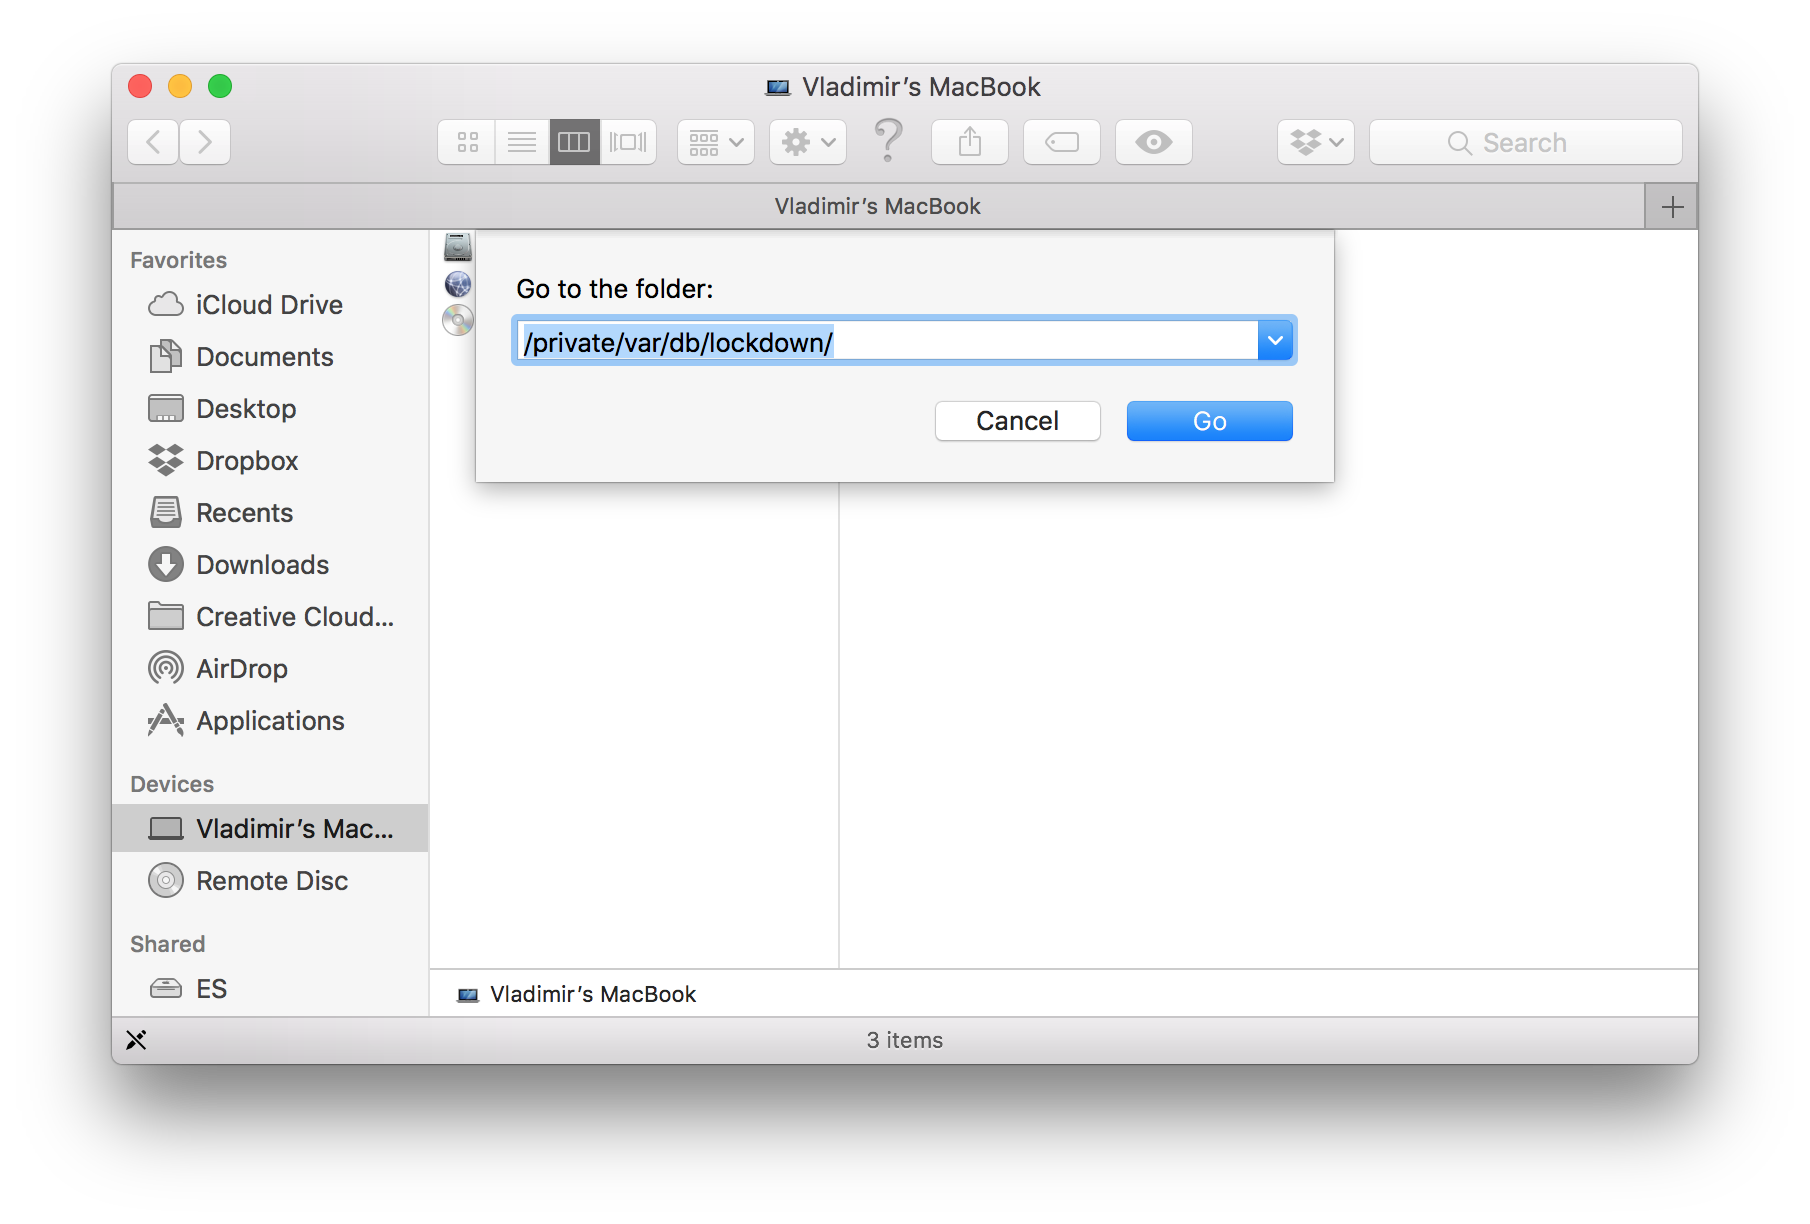 Get iOS Shared Files without a Jailbreak | ElcomSoft blog